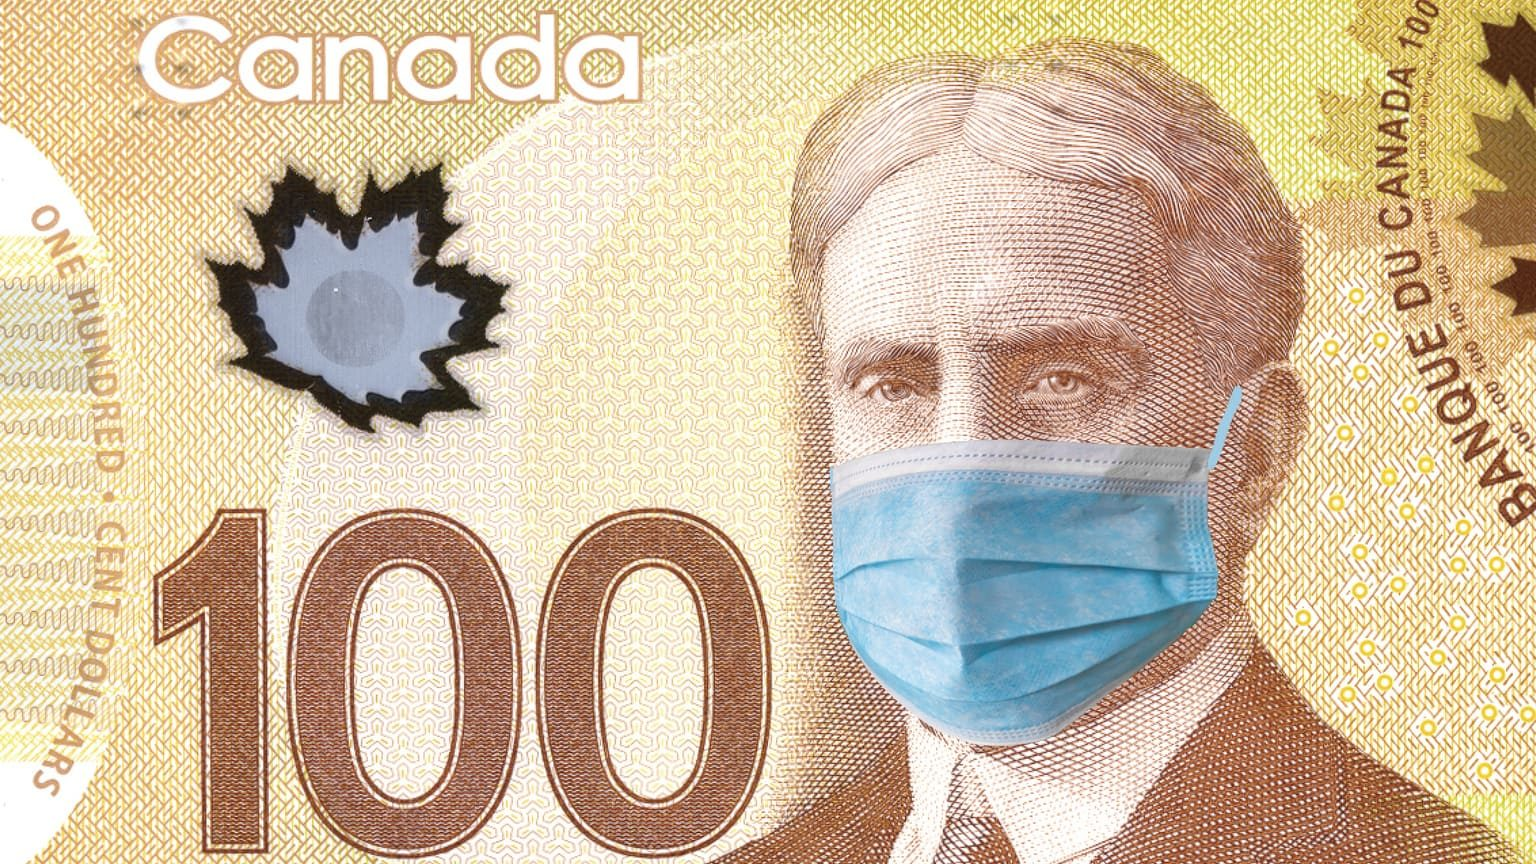 Canadian $100 bill with Robert Borden wearing protective face mask